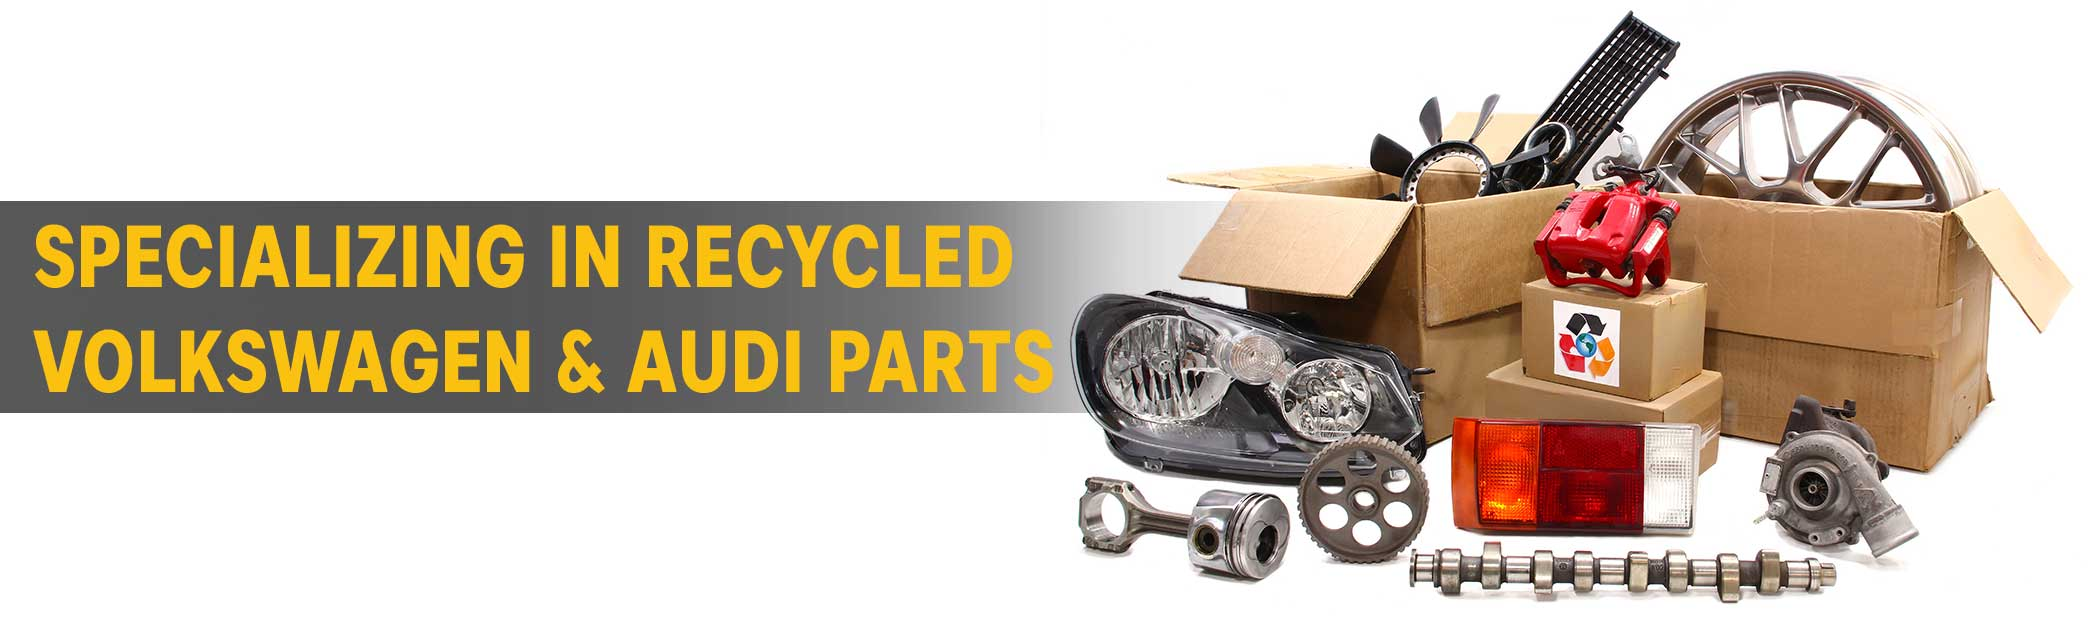 Specializing in recycled Volkswagen & Audi Parts